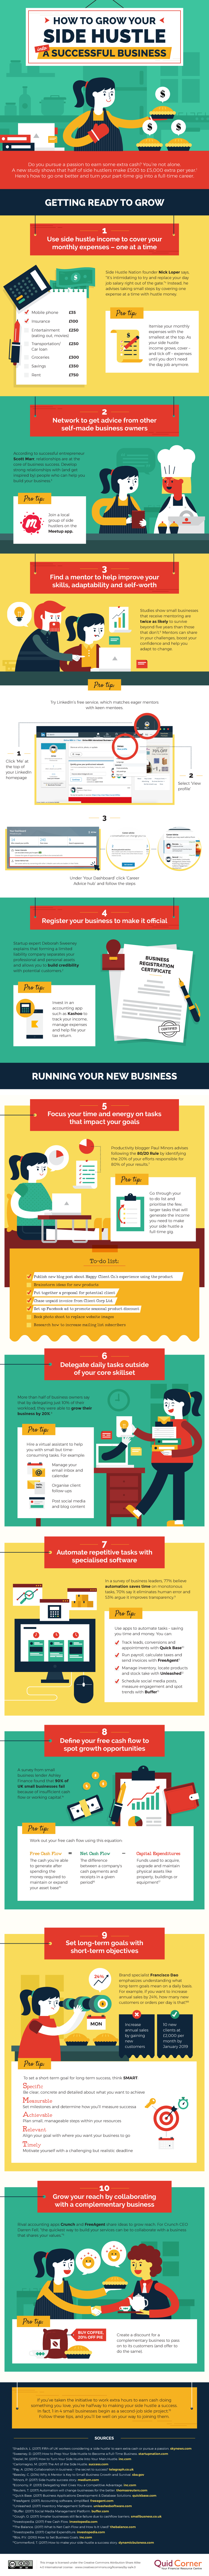 How to Grow Your Side Hustle into a Successful Business - #infographic